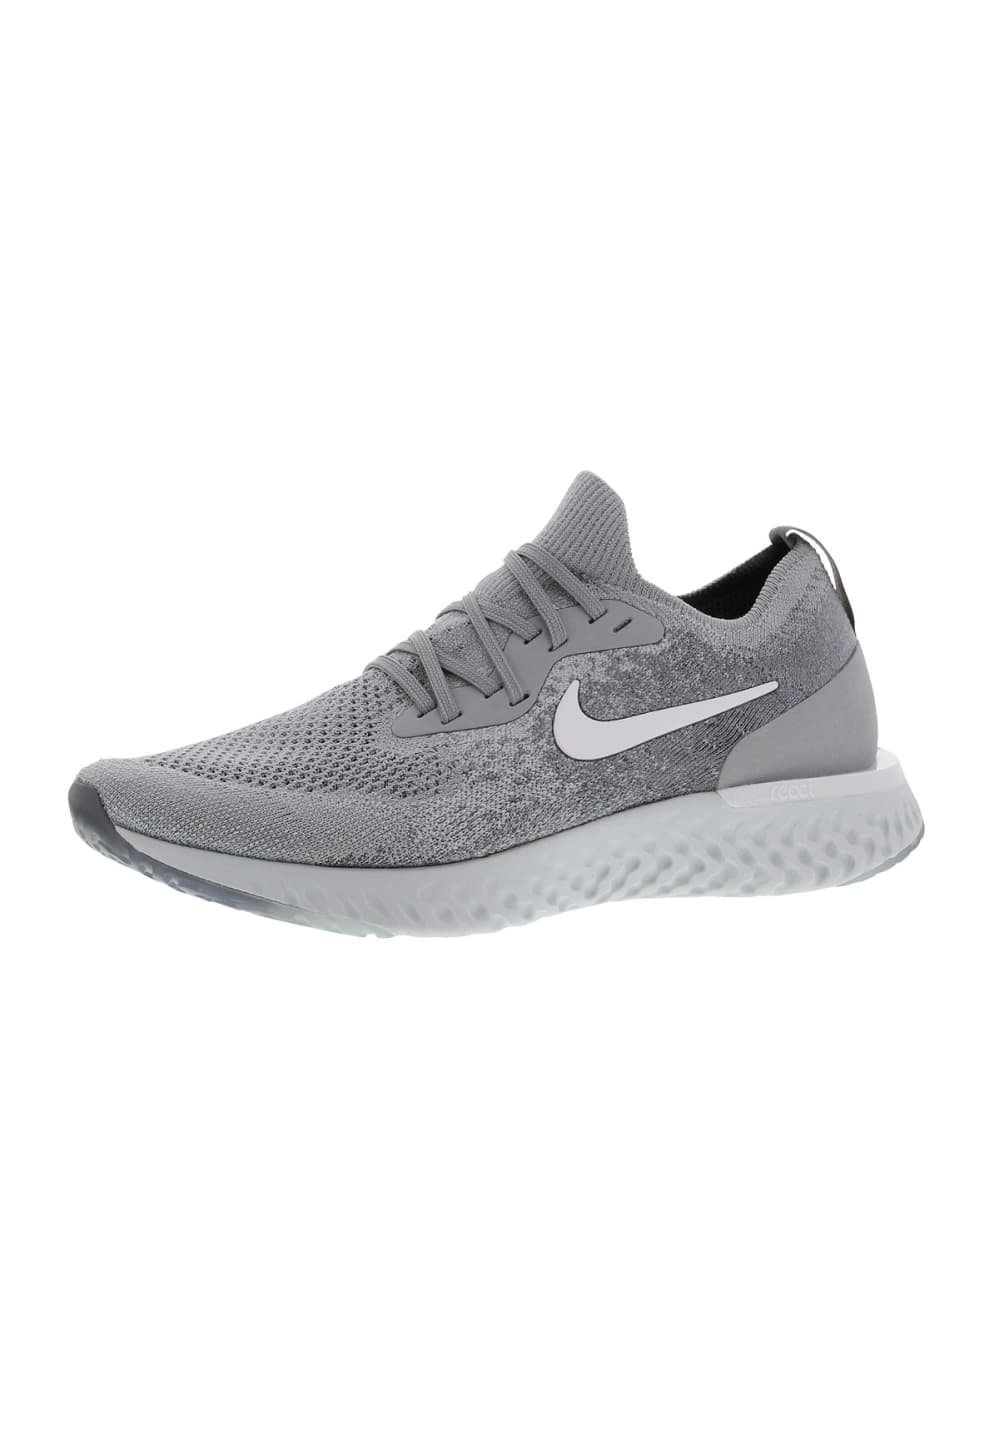 the best attitude e1955 6e0bb Nike Odyssey React - Running shoes for Women - Grey